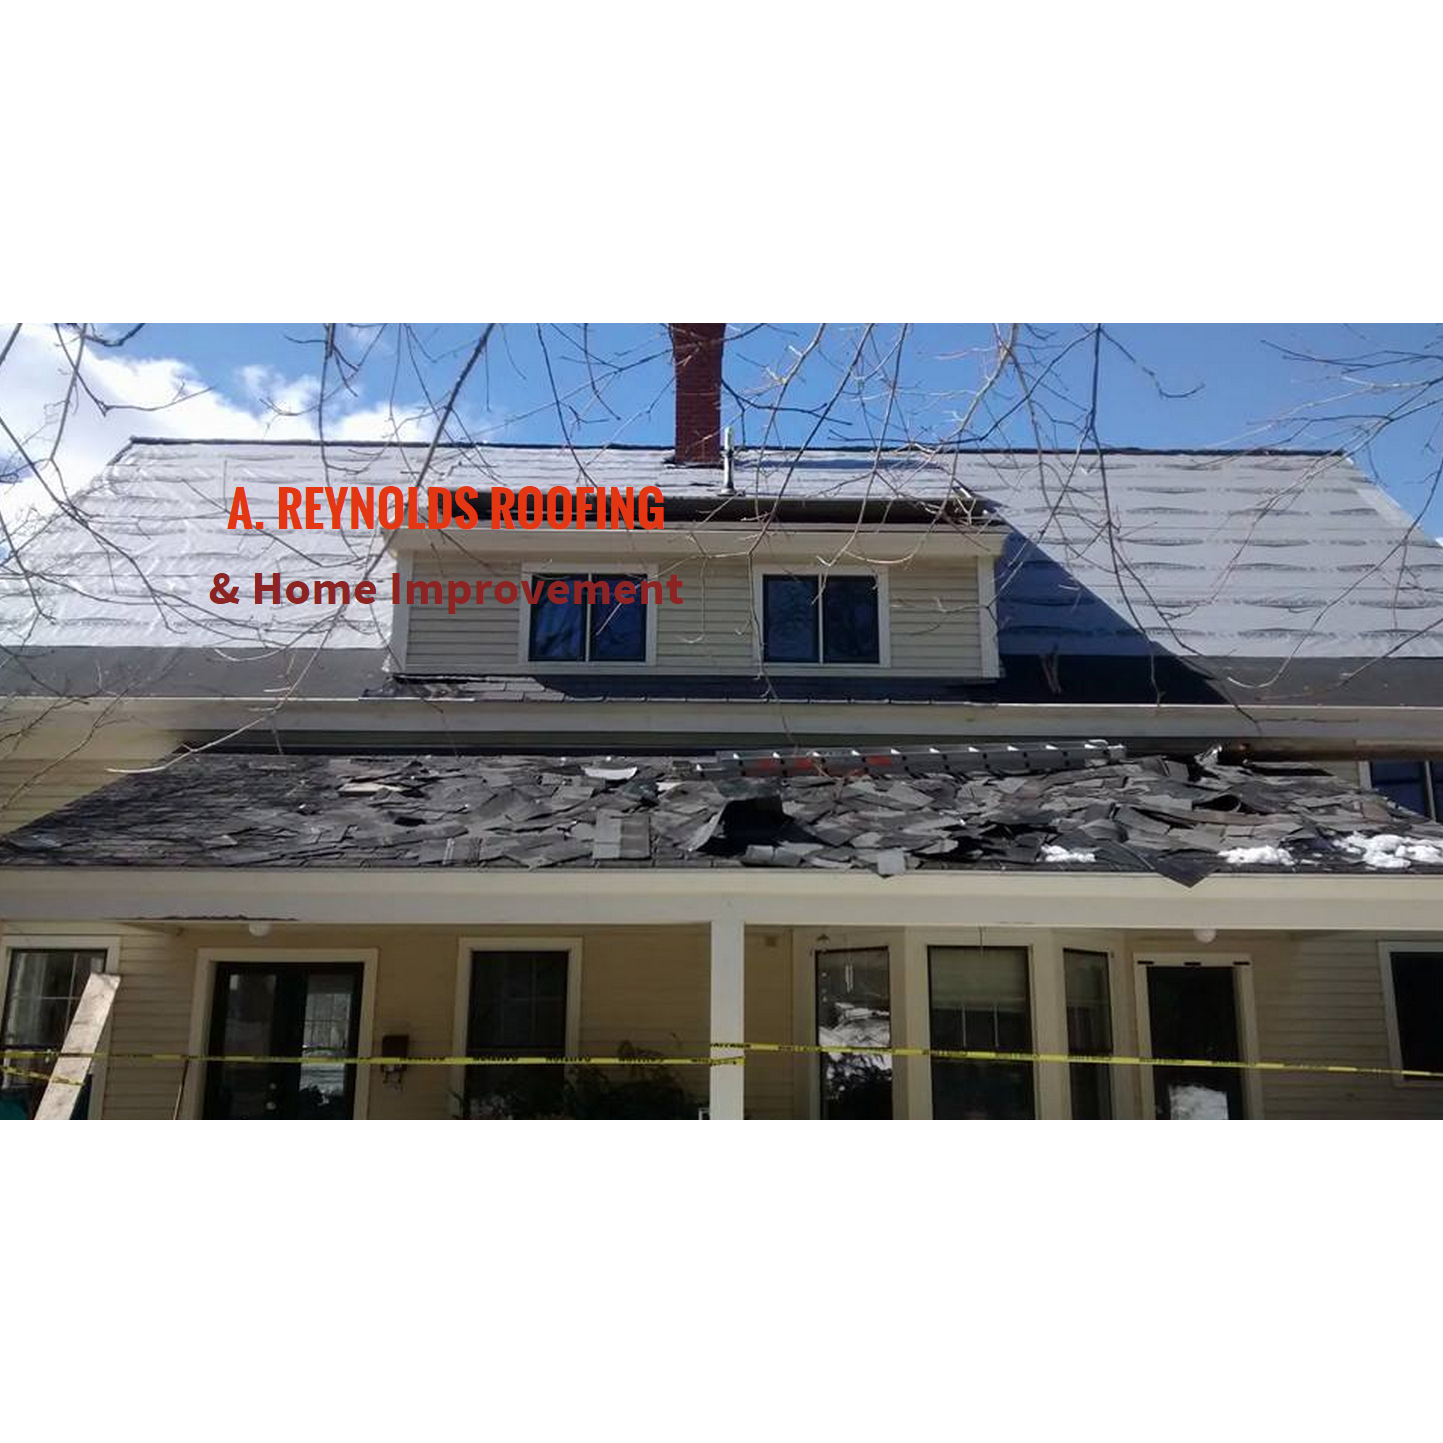 A Reynolds Roofing and Home Improvement